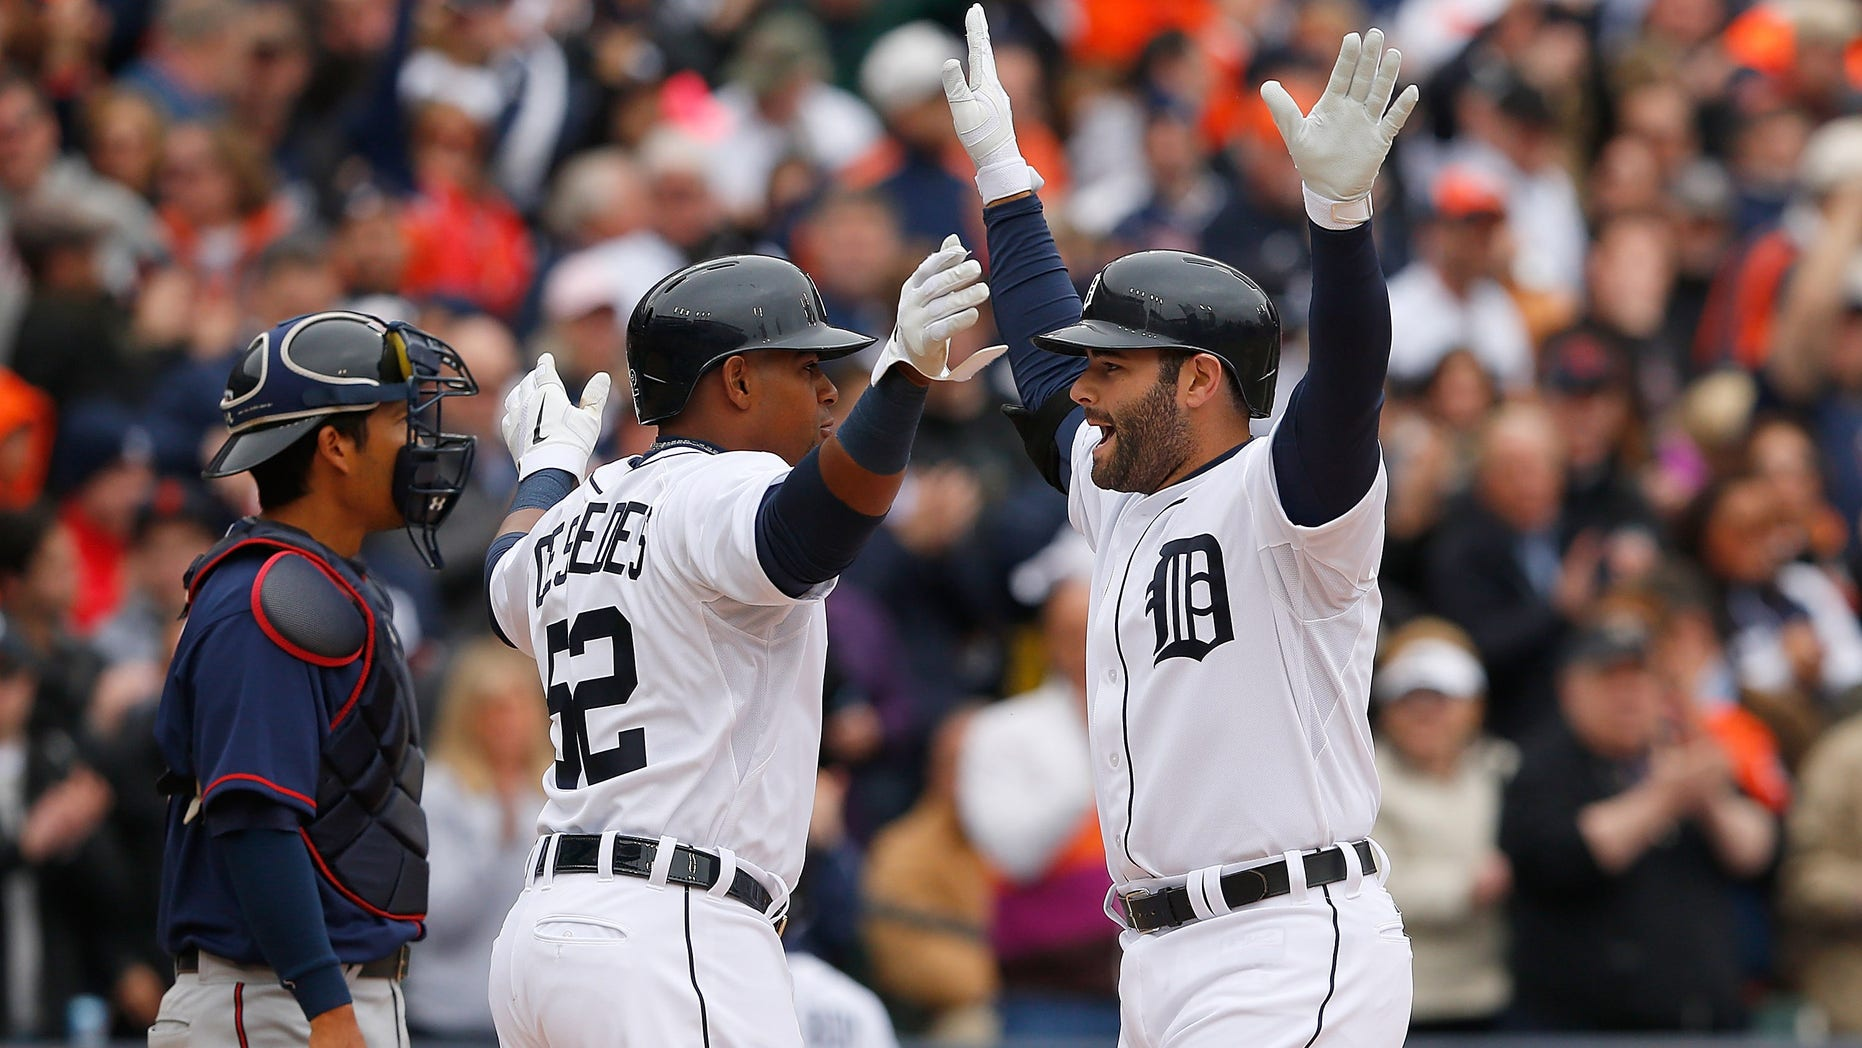 DETROIT, MI - APRIL 6: Alex Avila #13 of the Detroit Tigers celebrates with teammate Yoenis Cespedes #52 after hitting a two run home run in the second inning of the the Opening Day game against the Minnesota Twins at Comerica Park on April 6, 2015 in Detroit, Michigan. (Photo by Leon Halip/Getty Images)